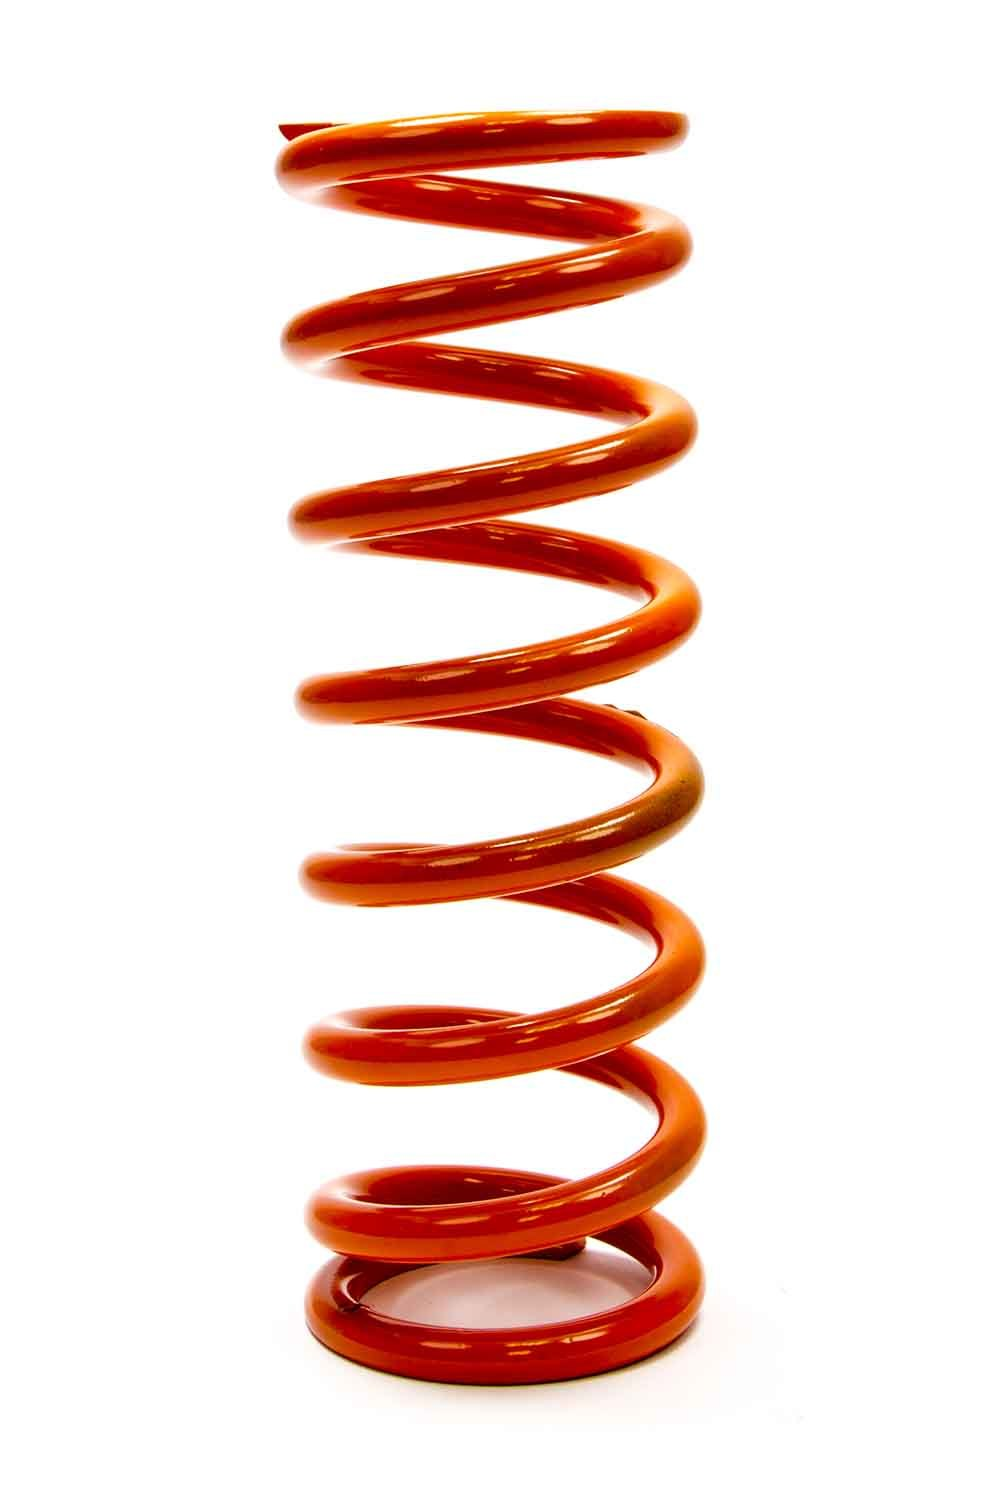 PAC Racing Springs PAC-10X2.5X750 Coil Spring, Coil-Over, 2.500 in ID, 10.000 in Length, 750 lb/in Spring Rate, Orange Powder Coat, Each